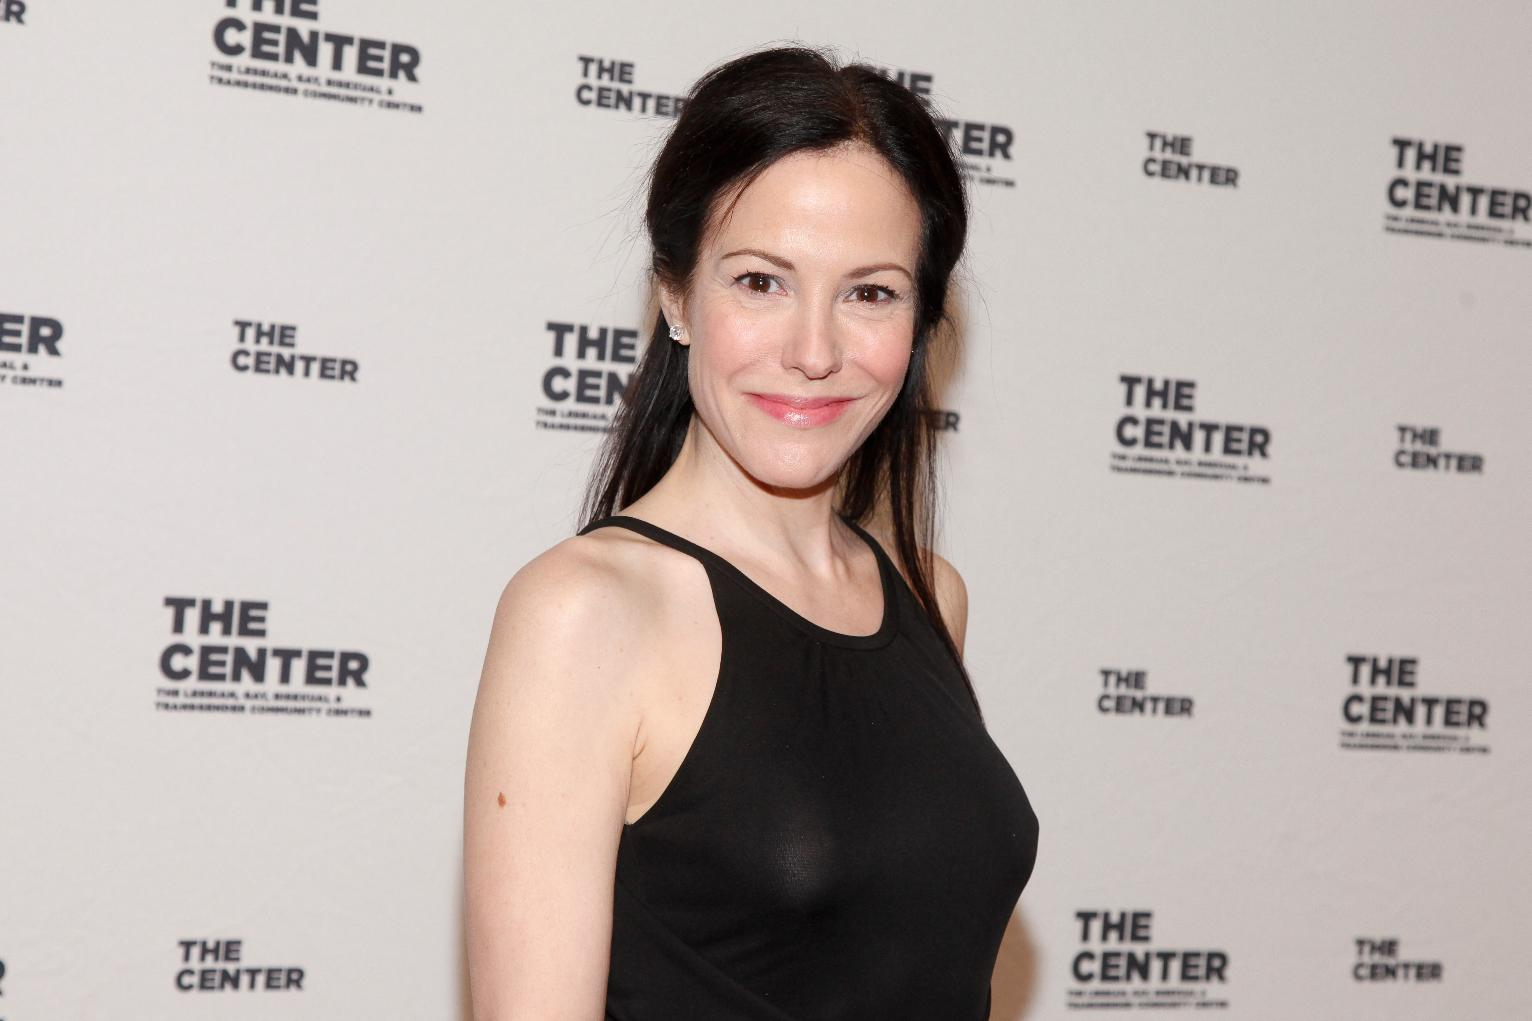 Mary louise parker topless